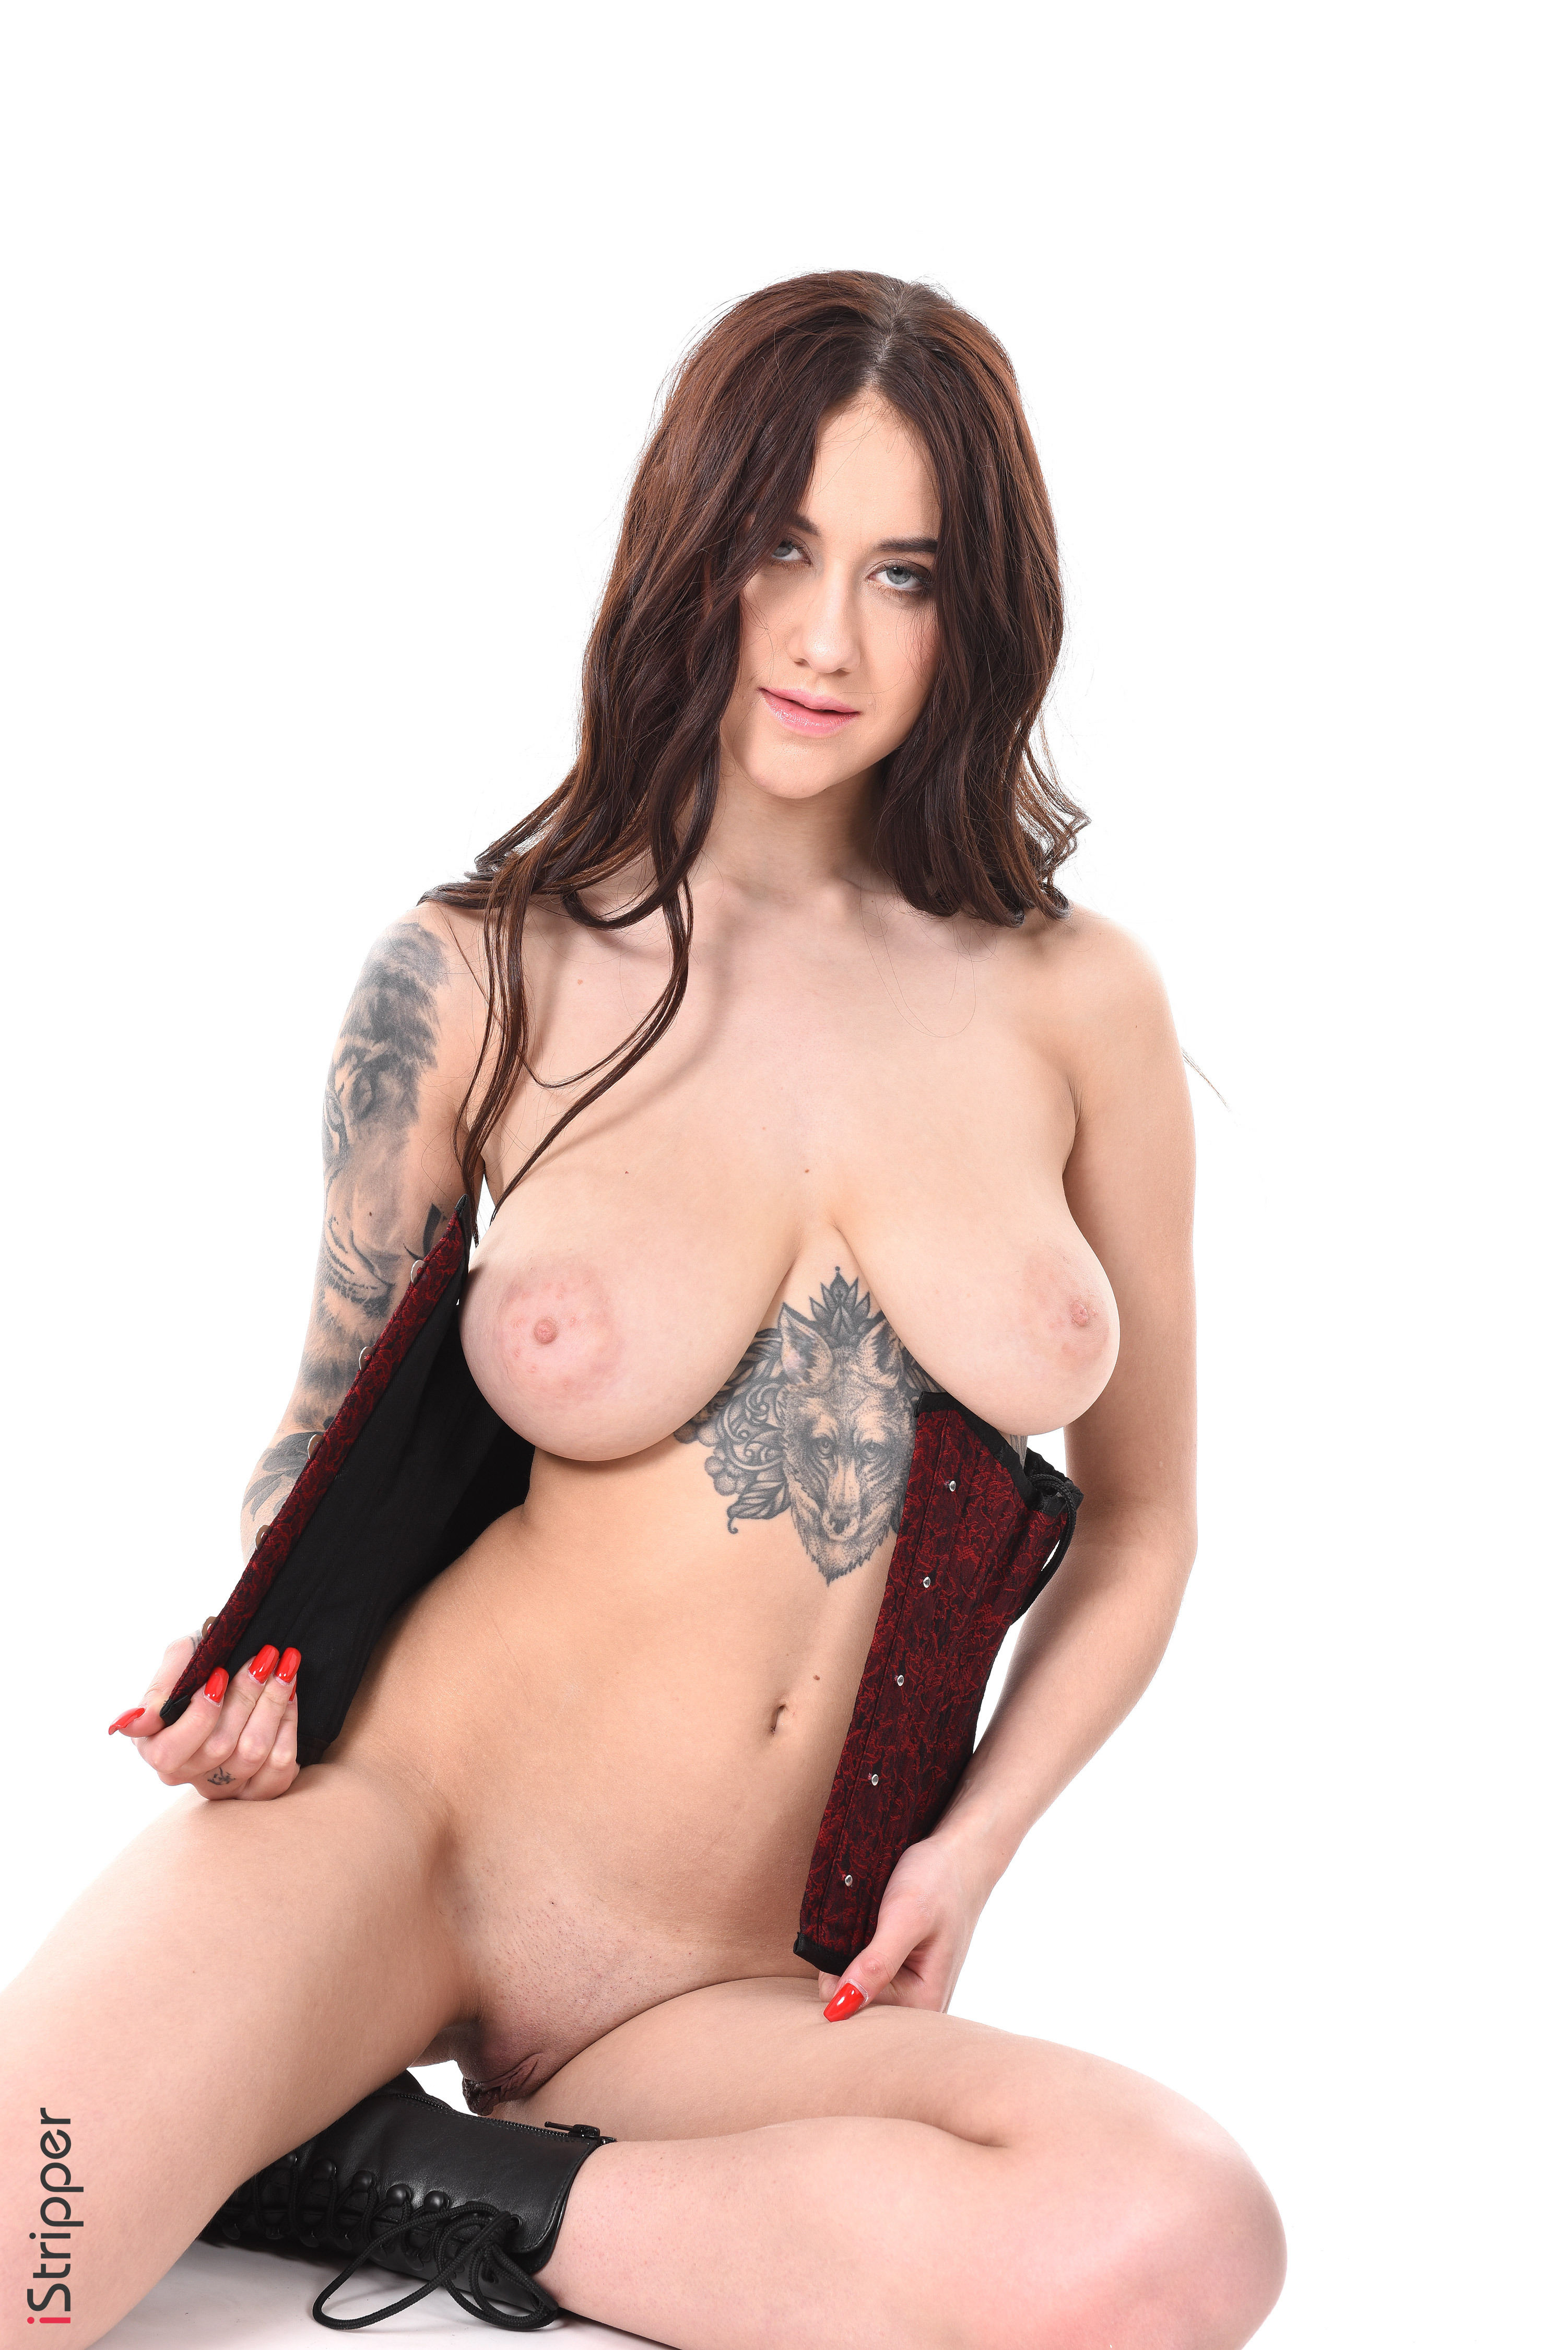 sexy striptease full nude